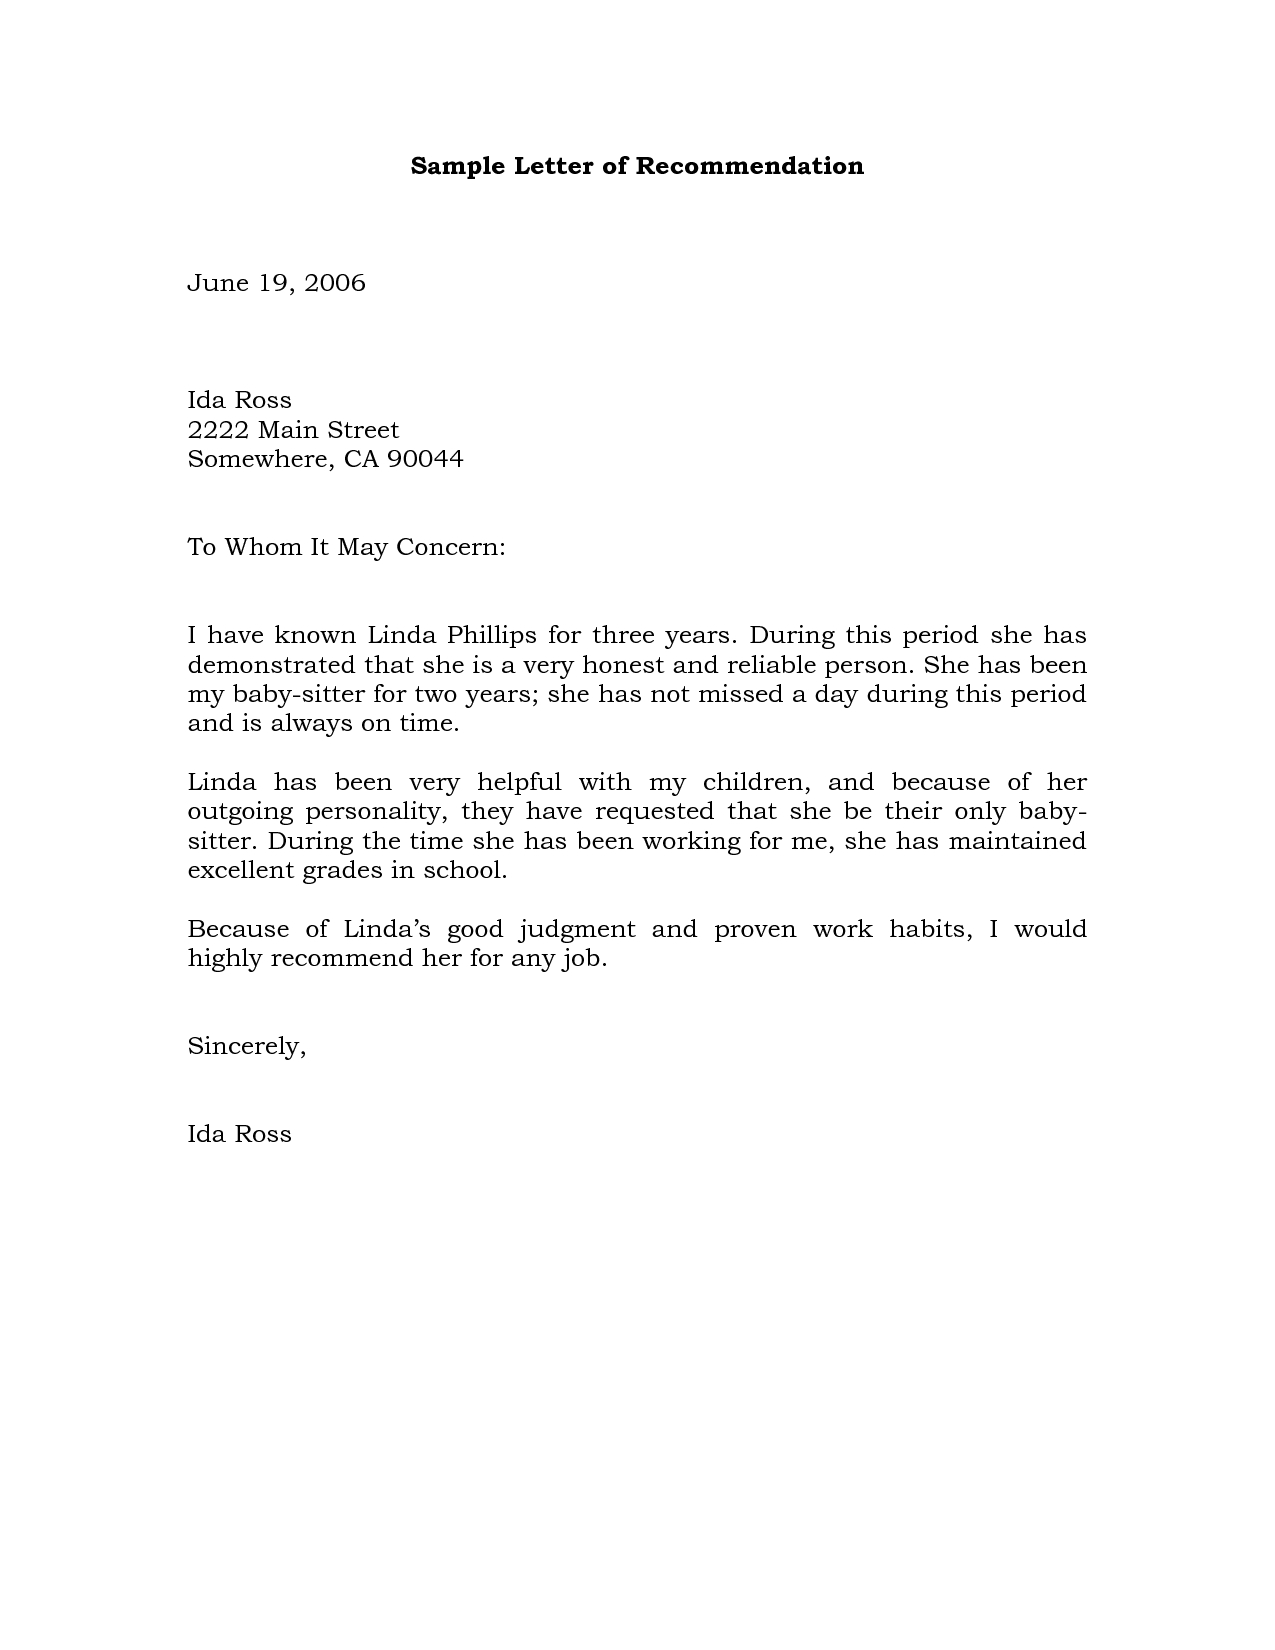 Startup Offer Letter Template - Sample Re Mendation Letter Example Projects to Try